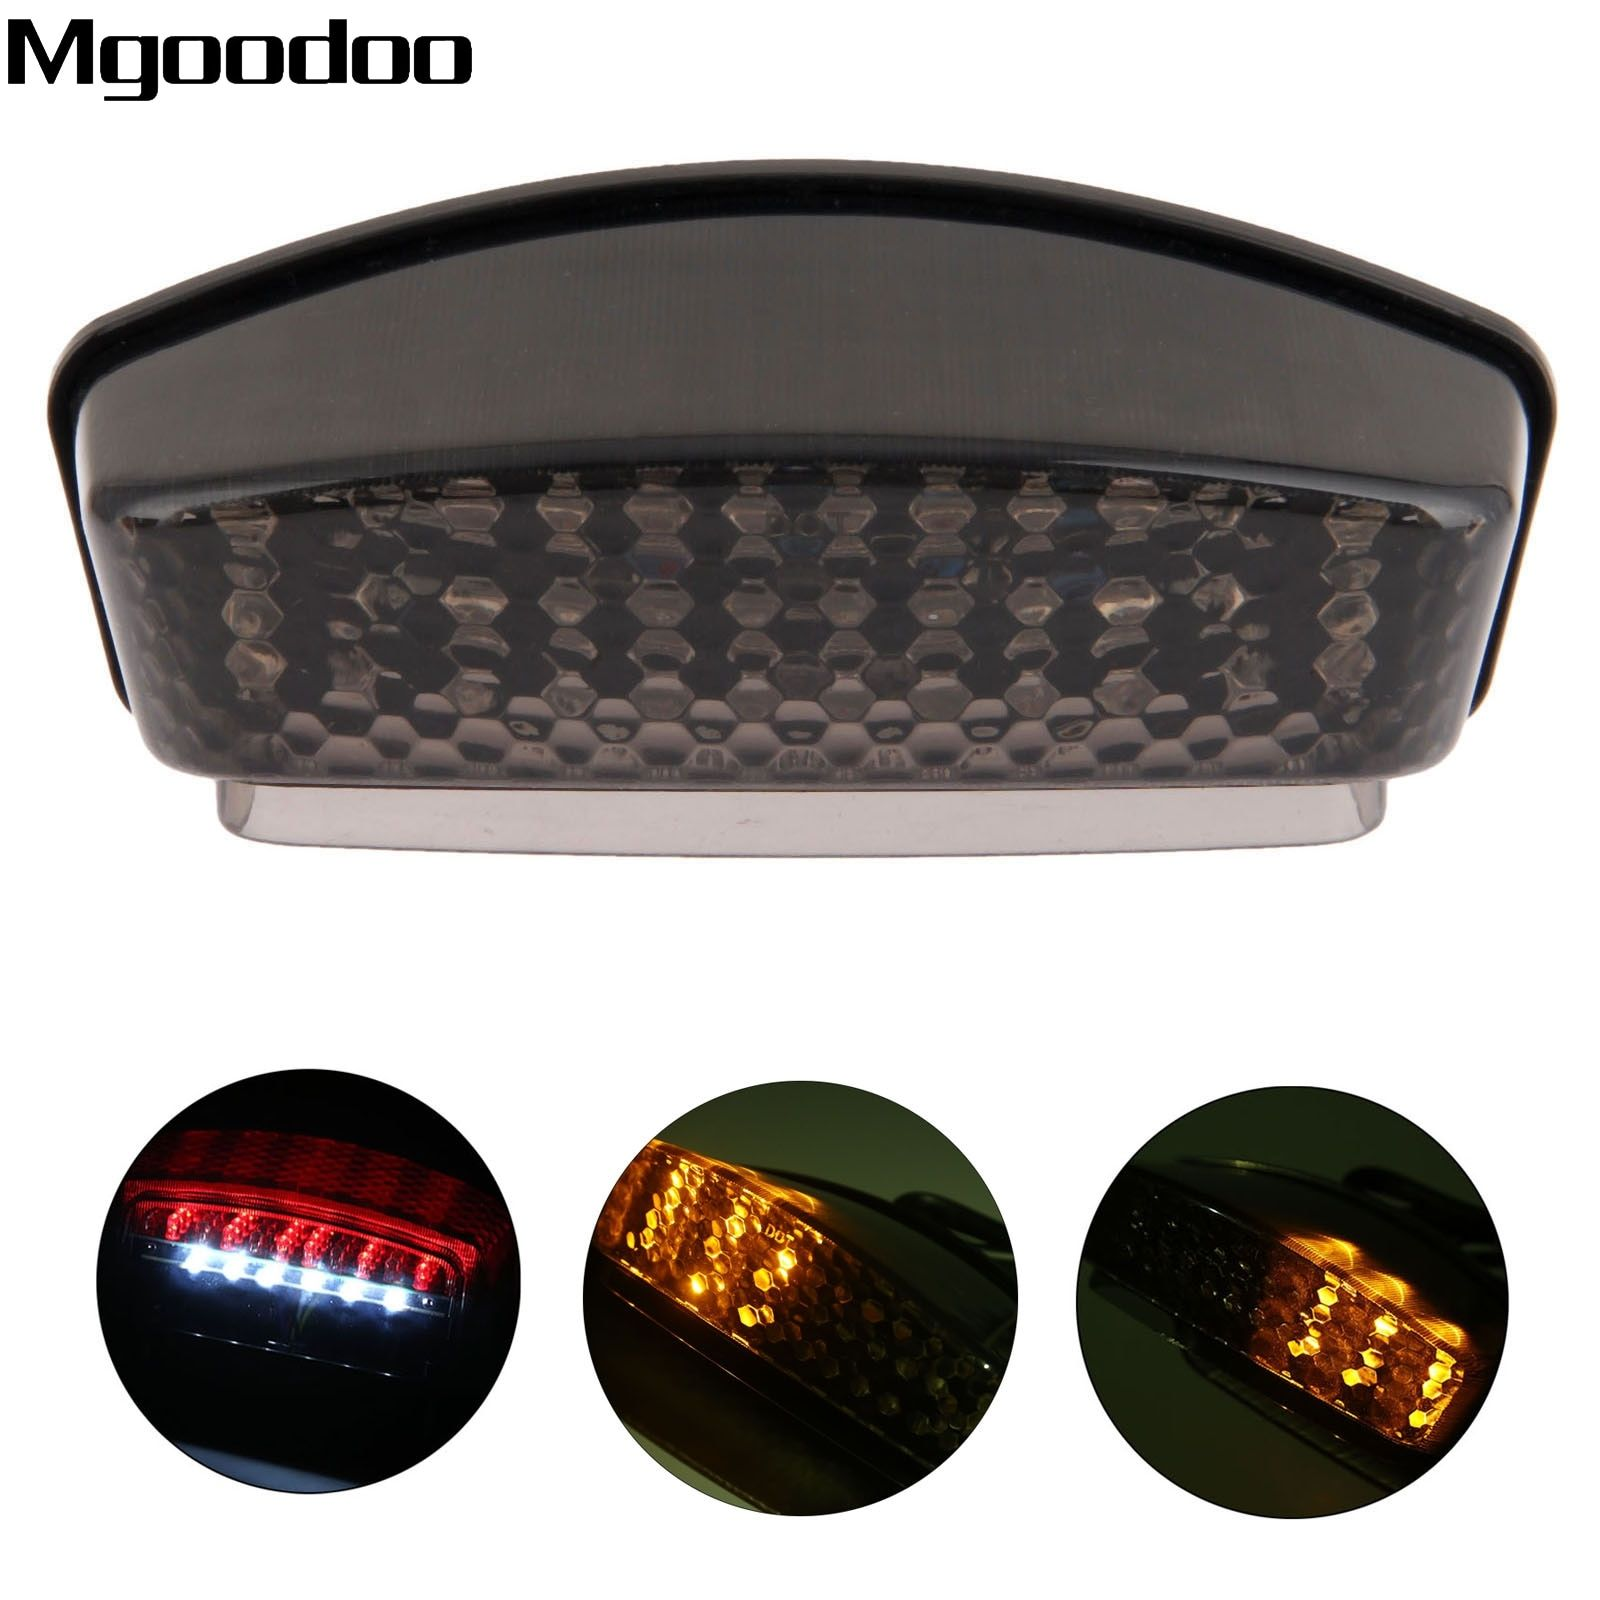 Mgoodoo Smoked Motorcycle LED Brake Tail Light Tailight Turn Signal Indicators For Ducati Monster 900 94-08 1000 S2R S4R S4 S4RS